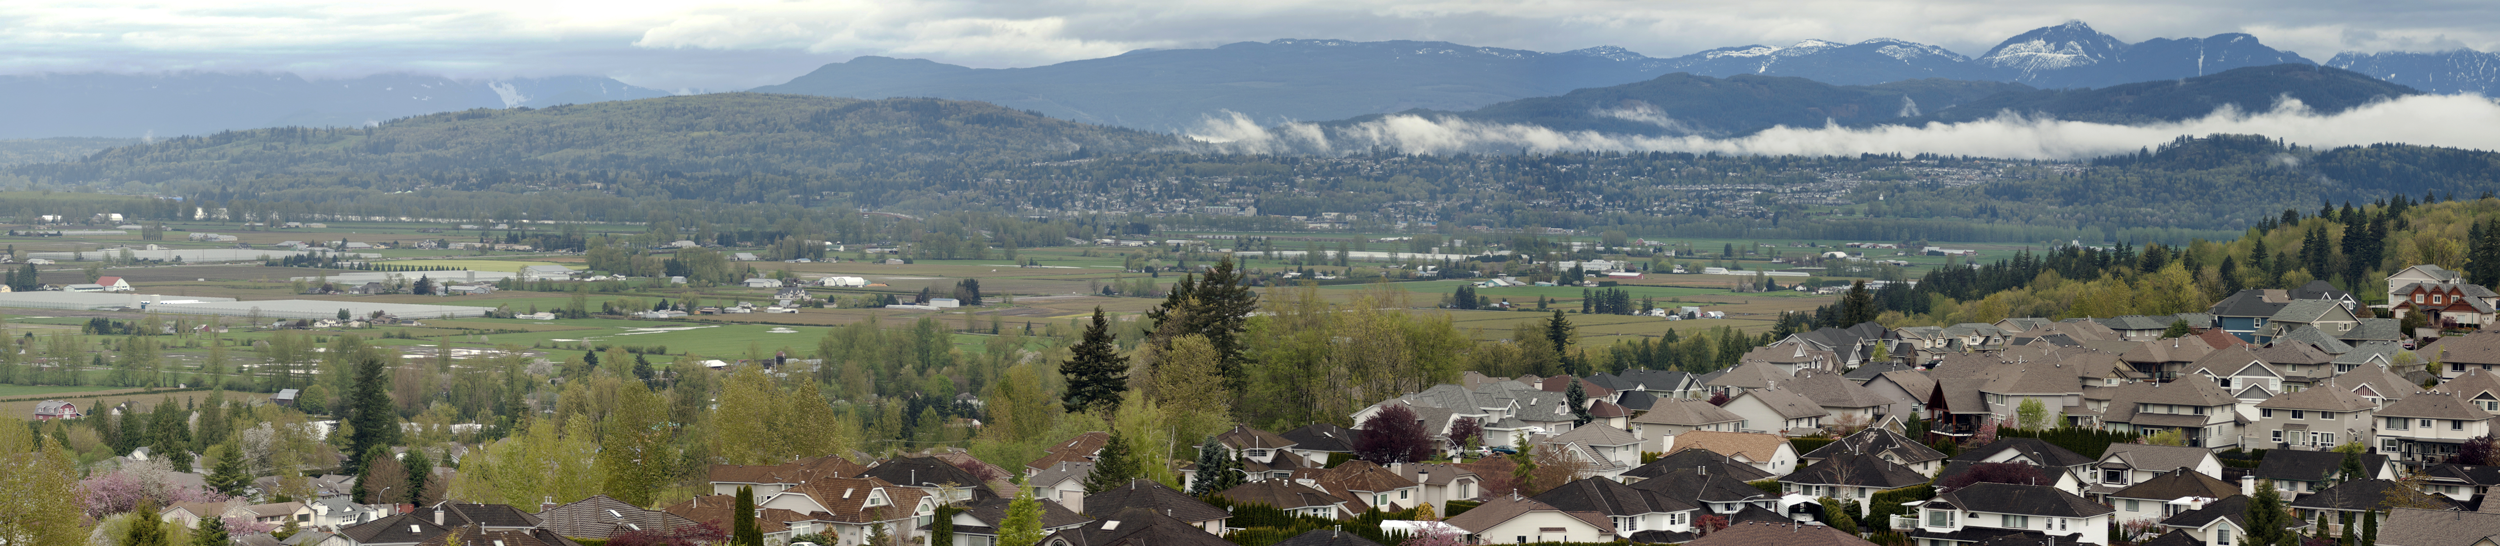 Fraser_Valley_Panorama_2